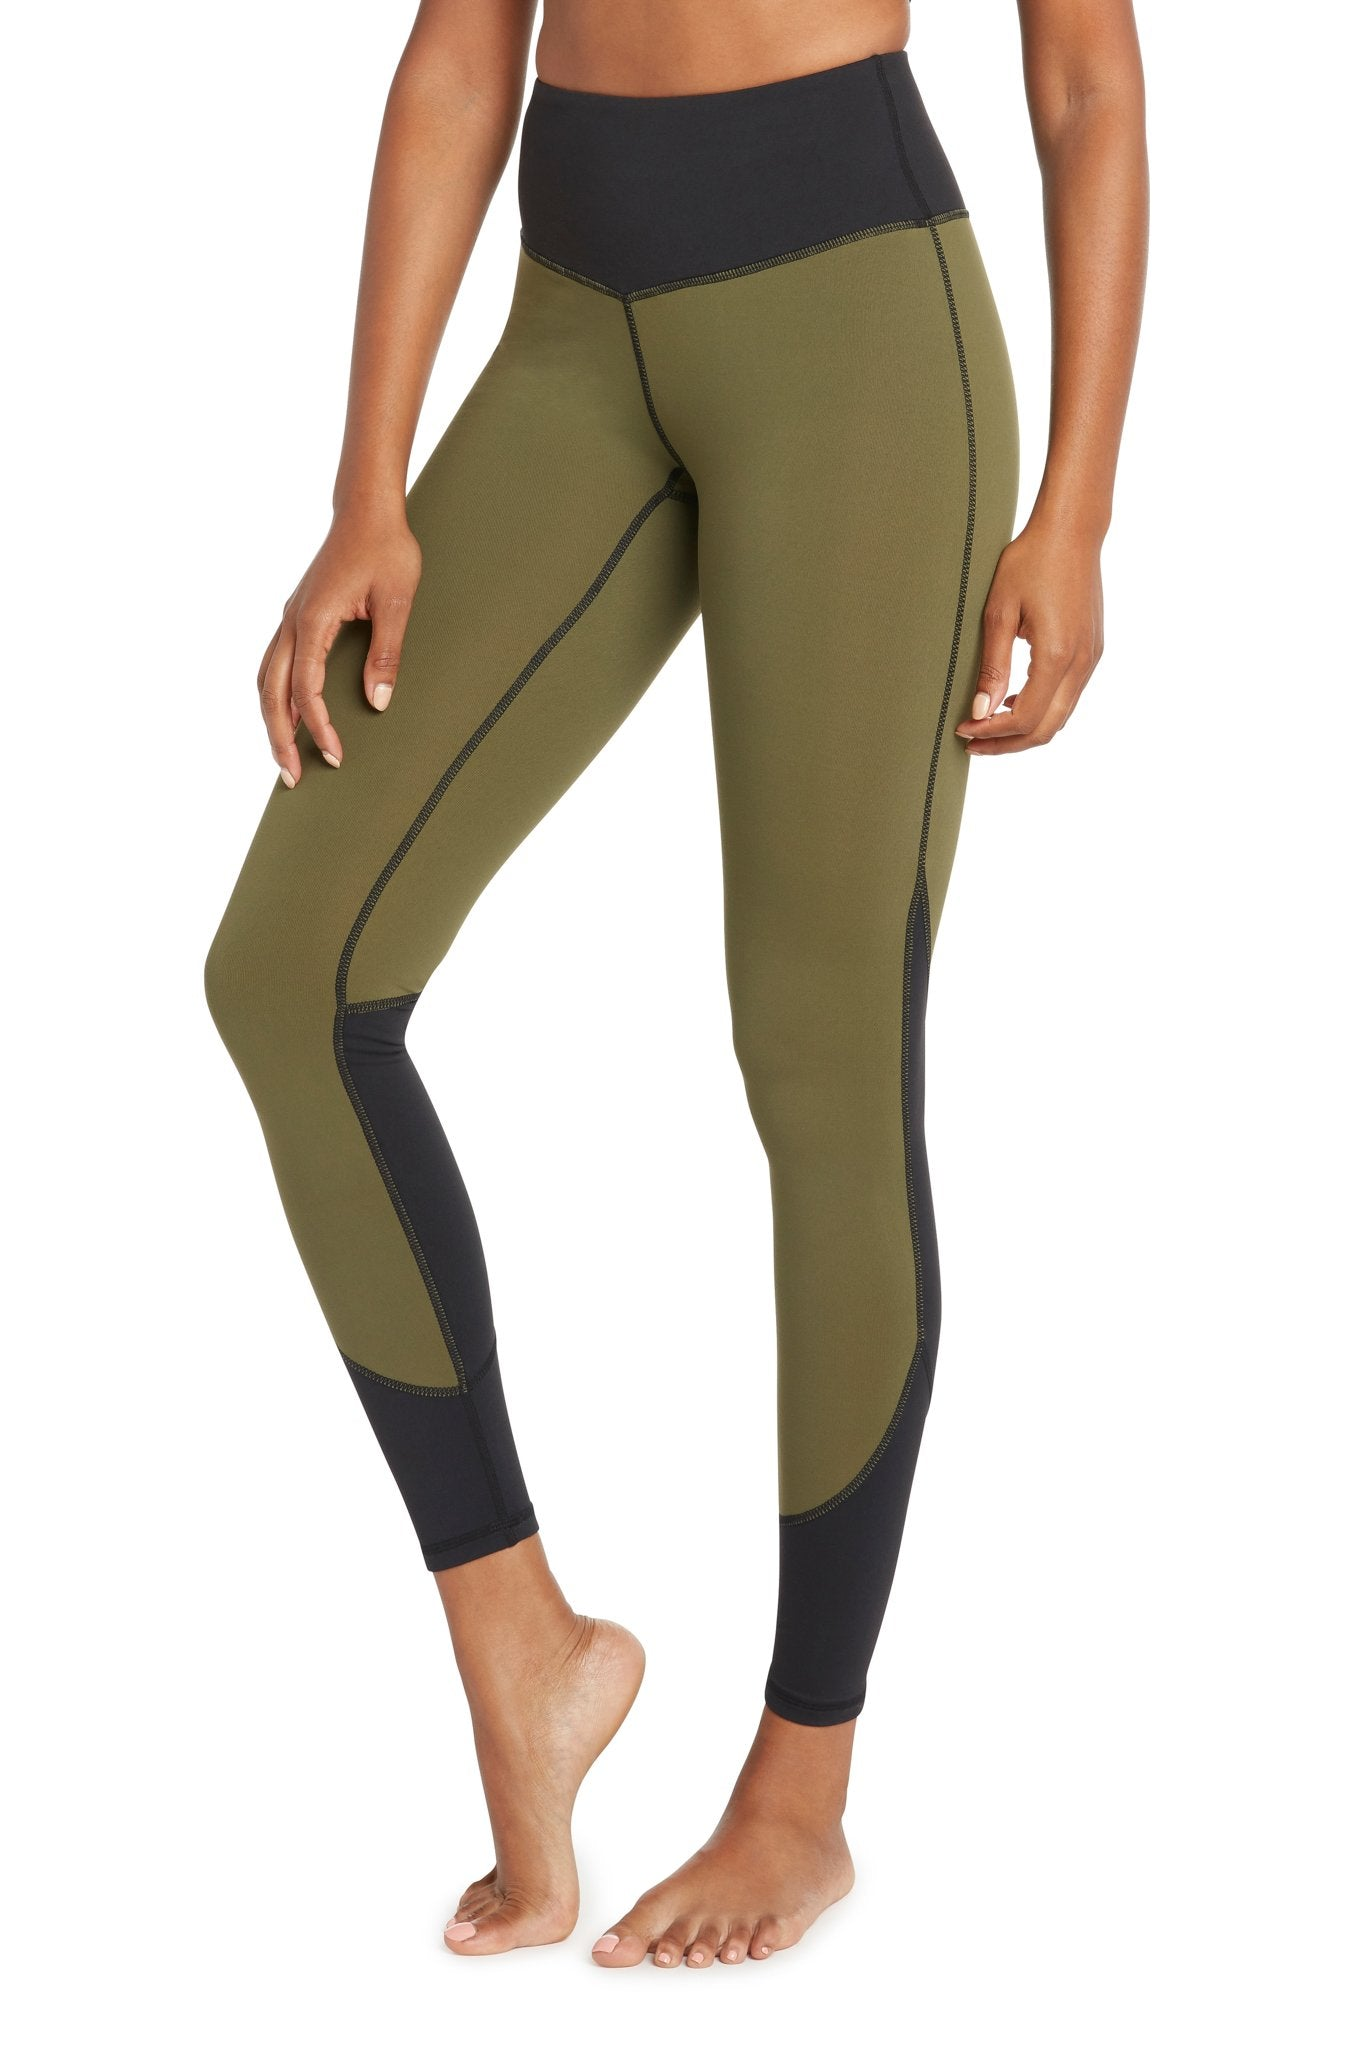 Francesca High-Waist Women's Yoga Pants